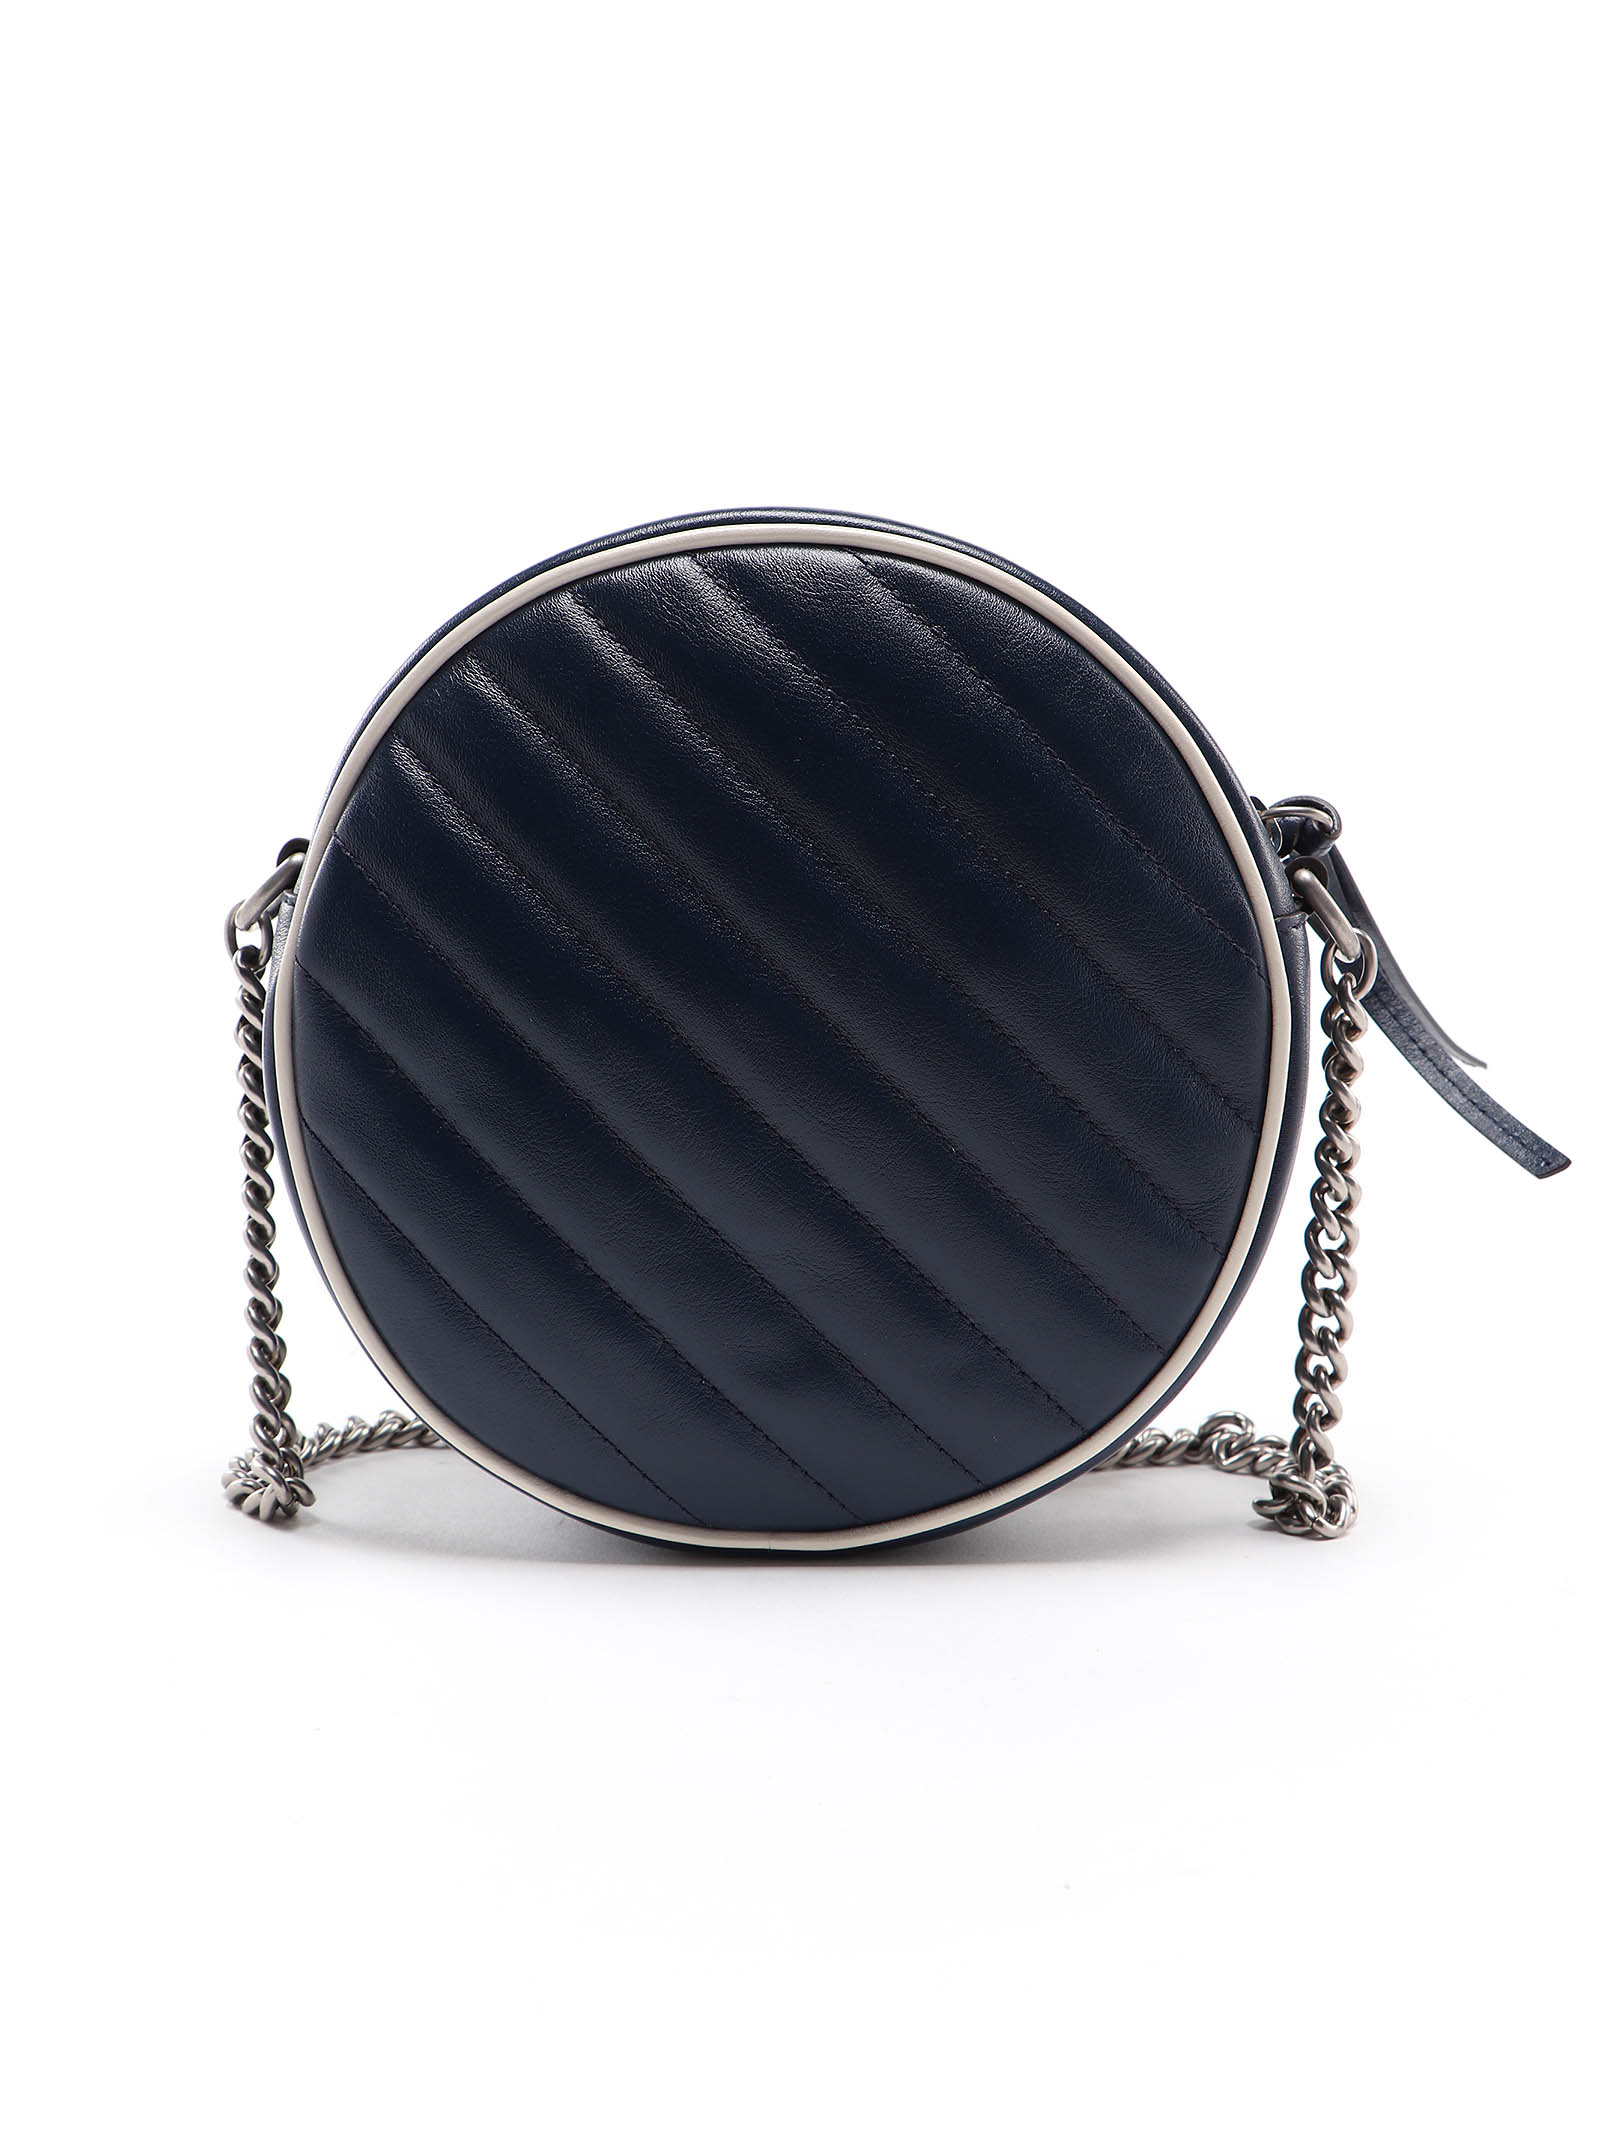 Picture of Gucci   GG Marmont Round Bag